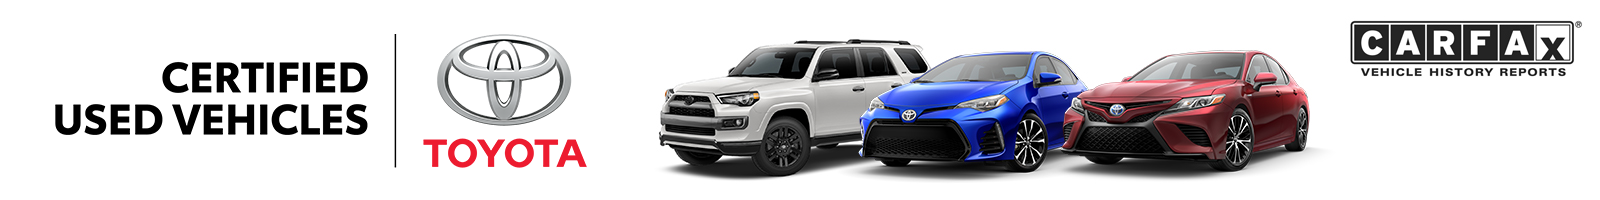 Toyota Certified Used Vehicles Program